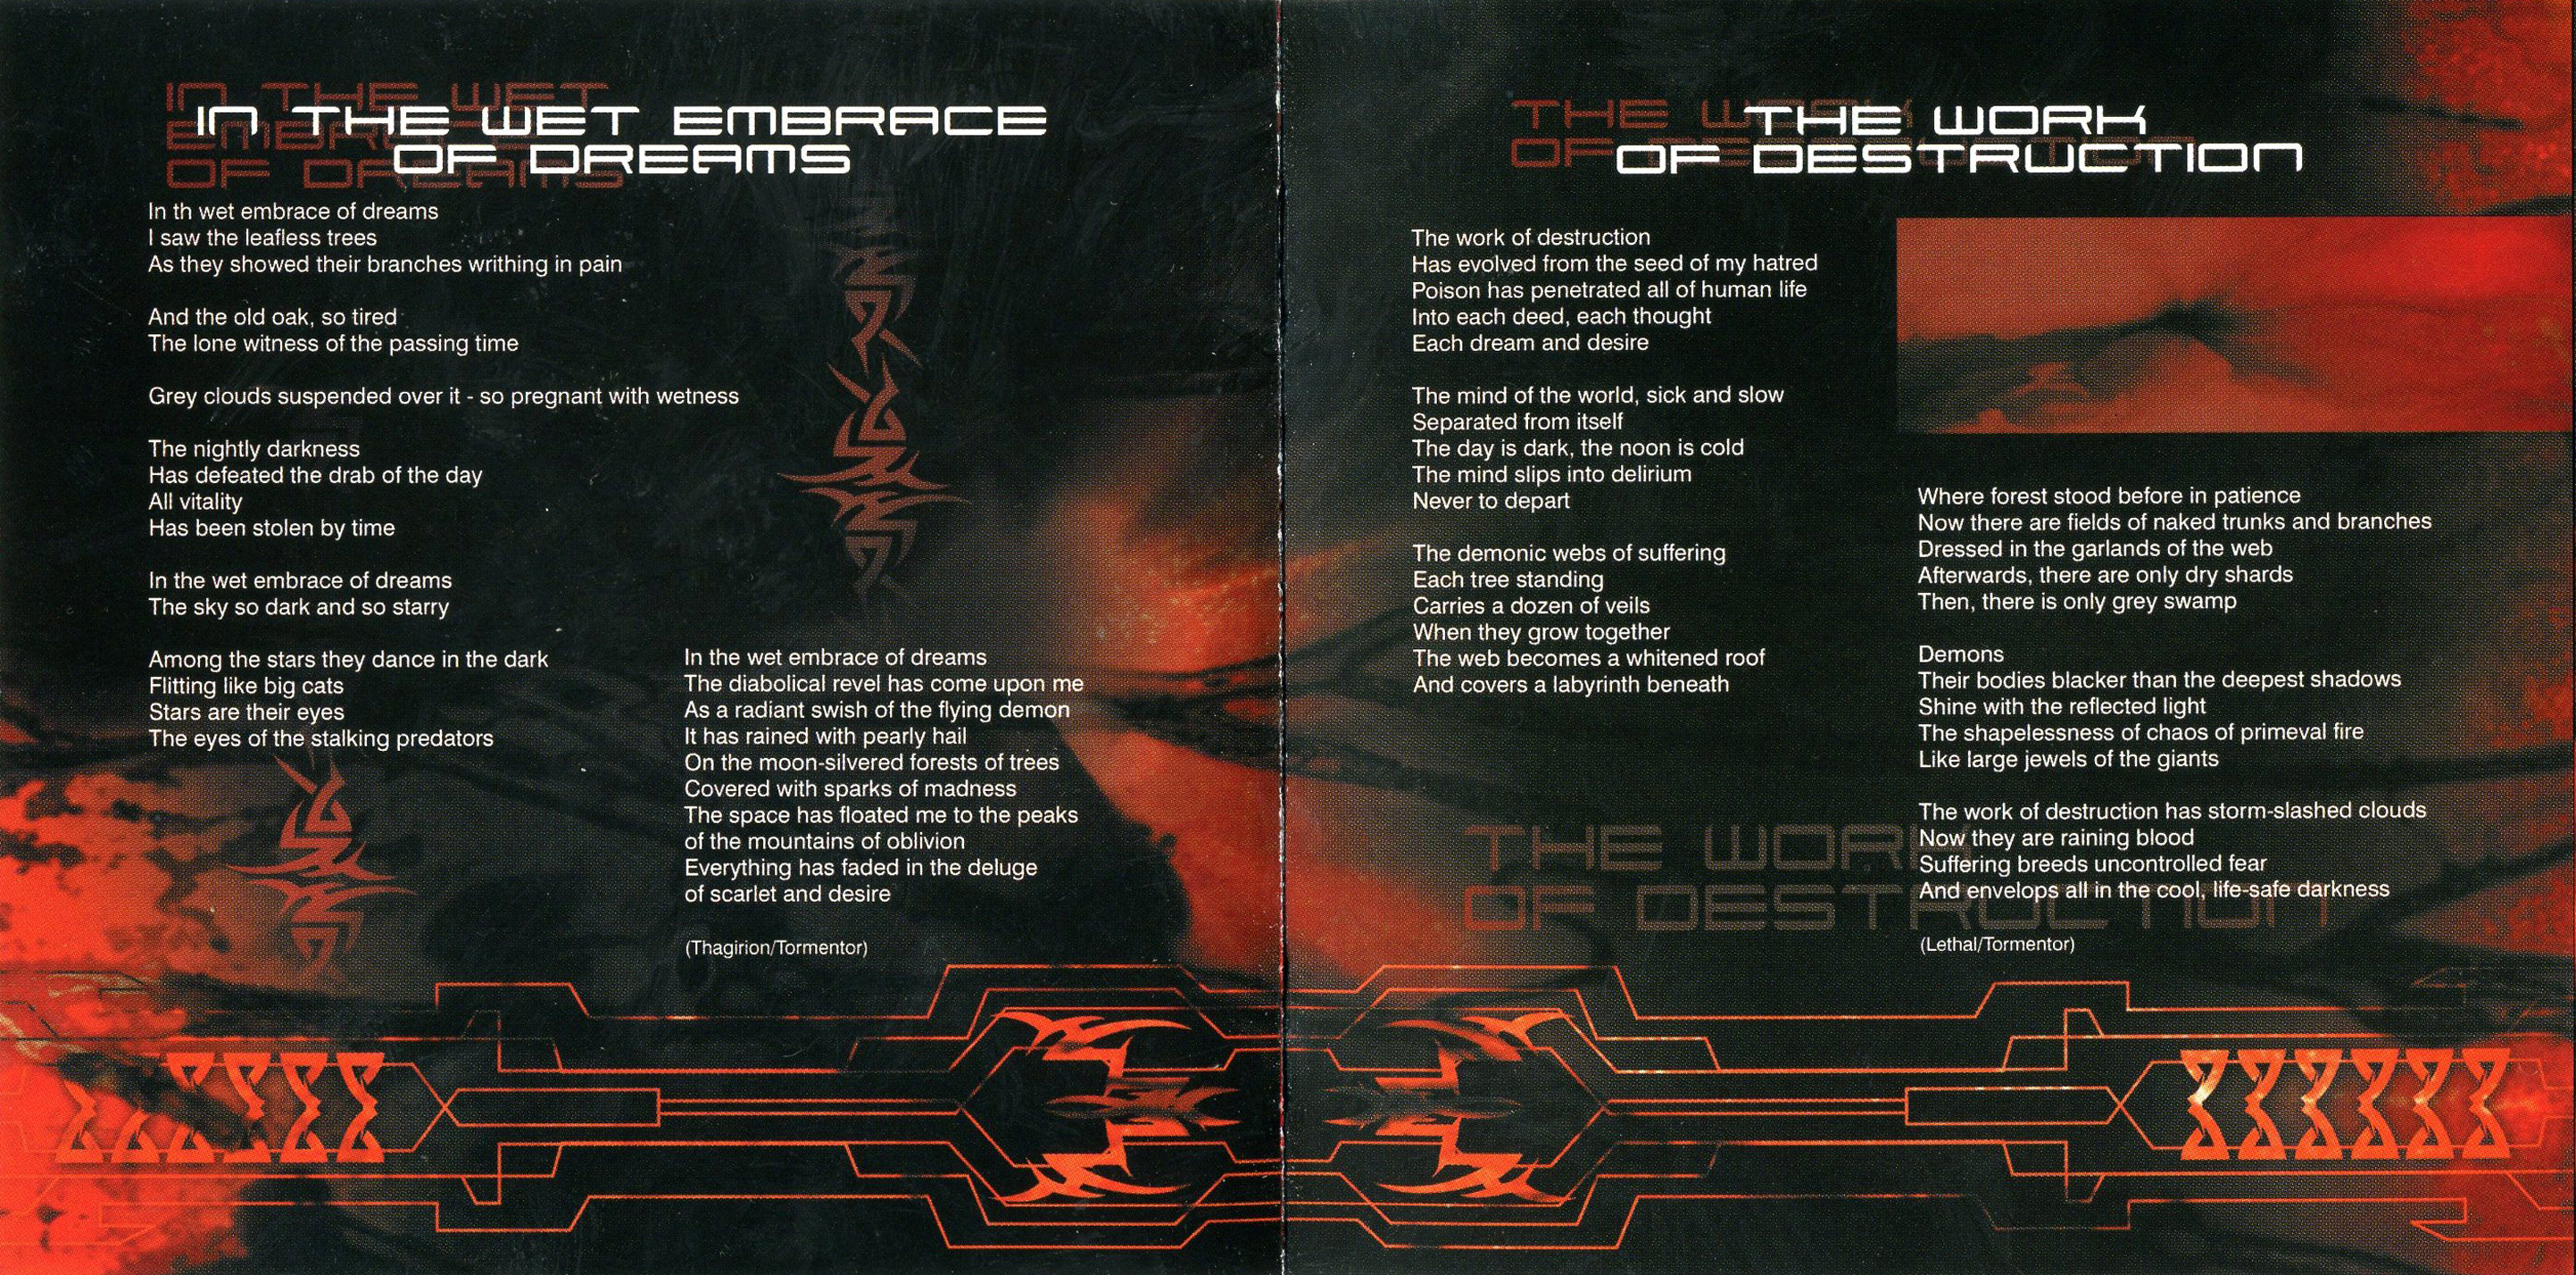 Belfegor - The Work Of Destruction (Russia) - Booklet (5-6)